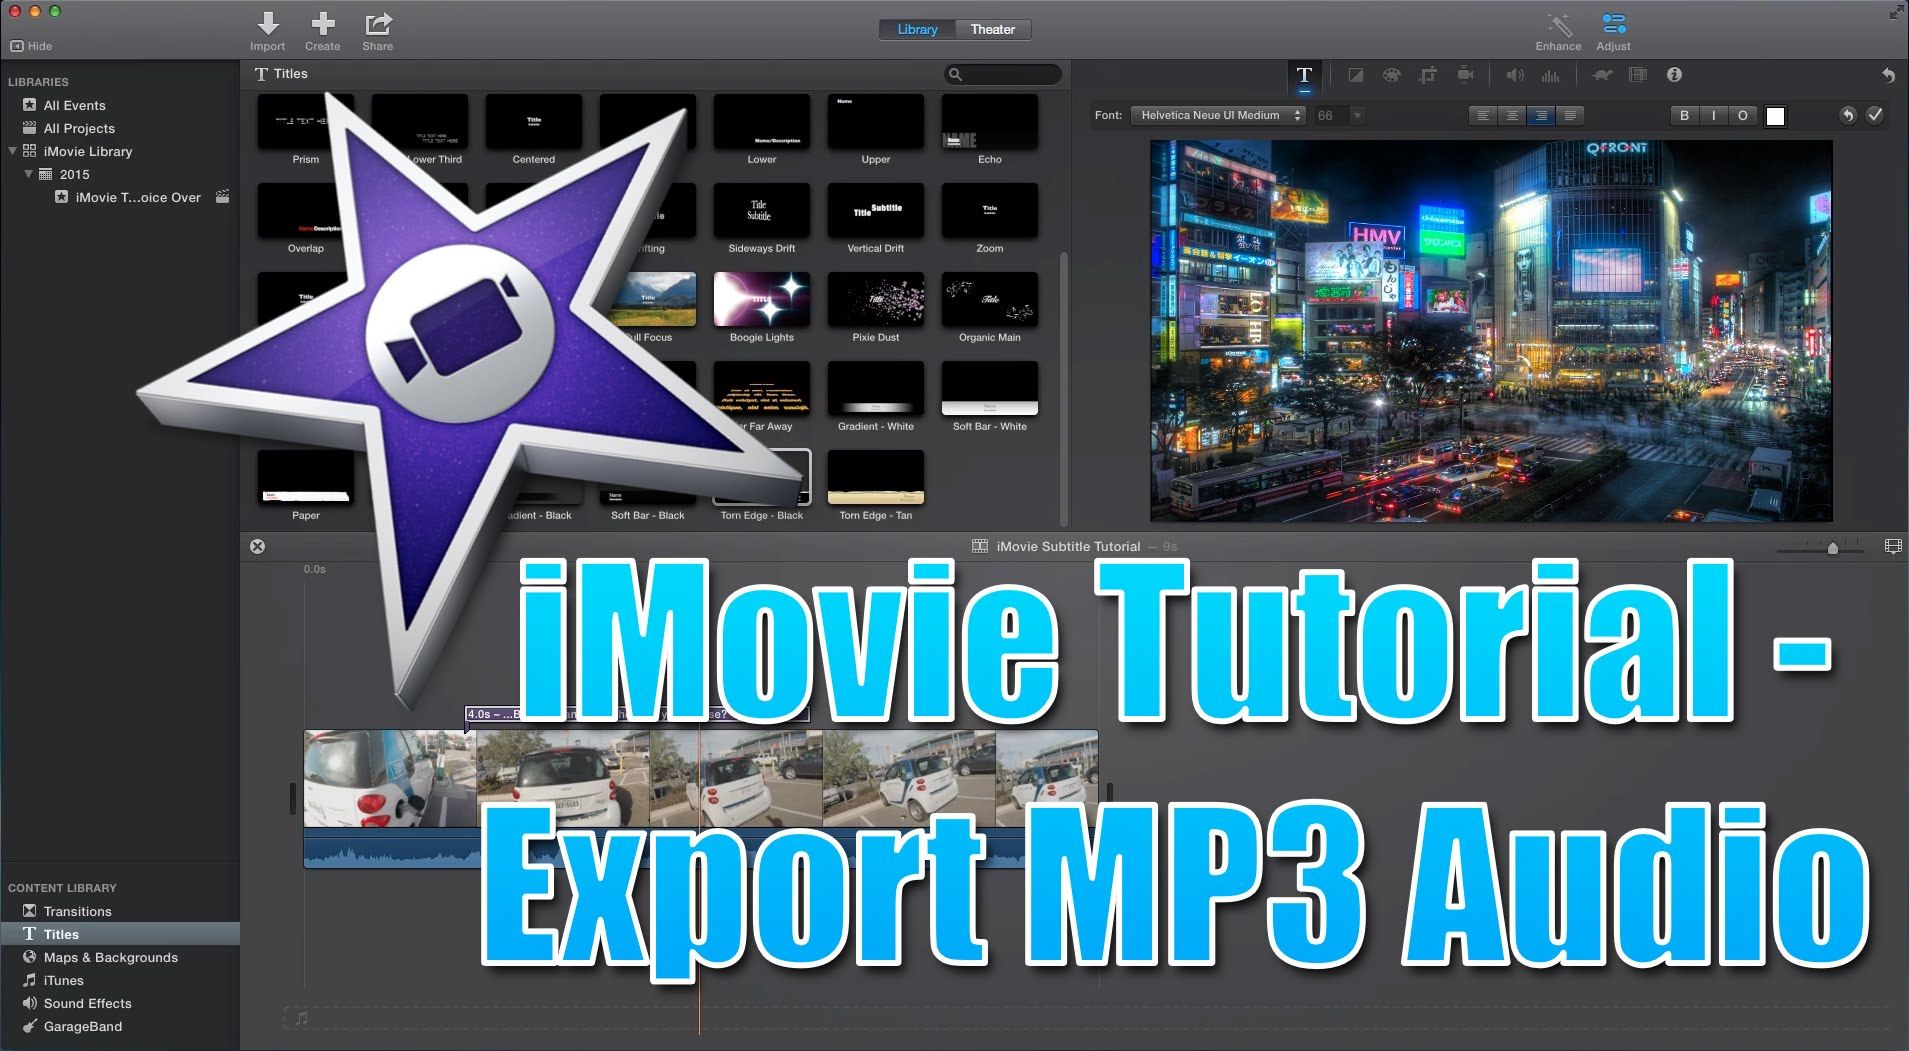 Imovie Tutorial How To Export Imovie Video To Audio Mp3 Mp3 Video Converter Video